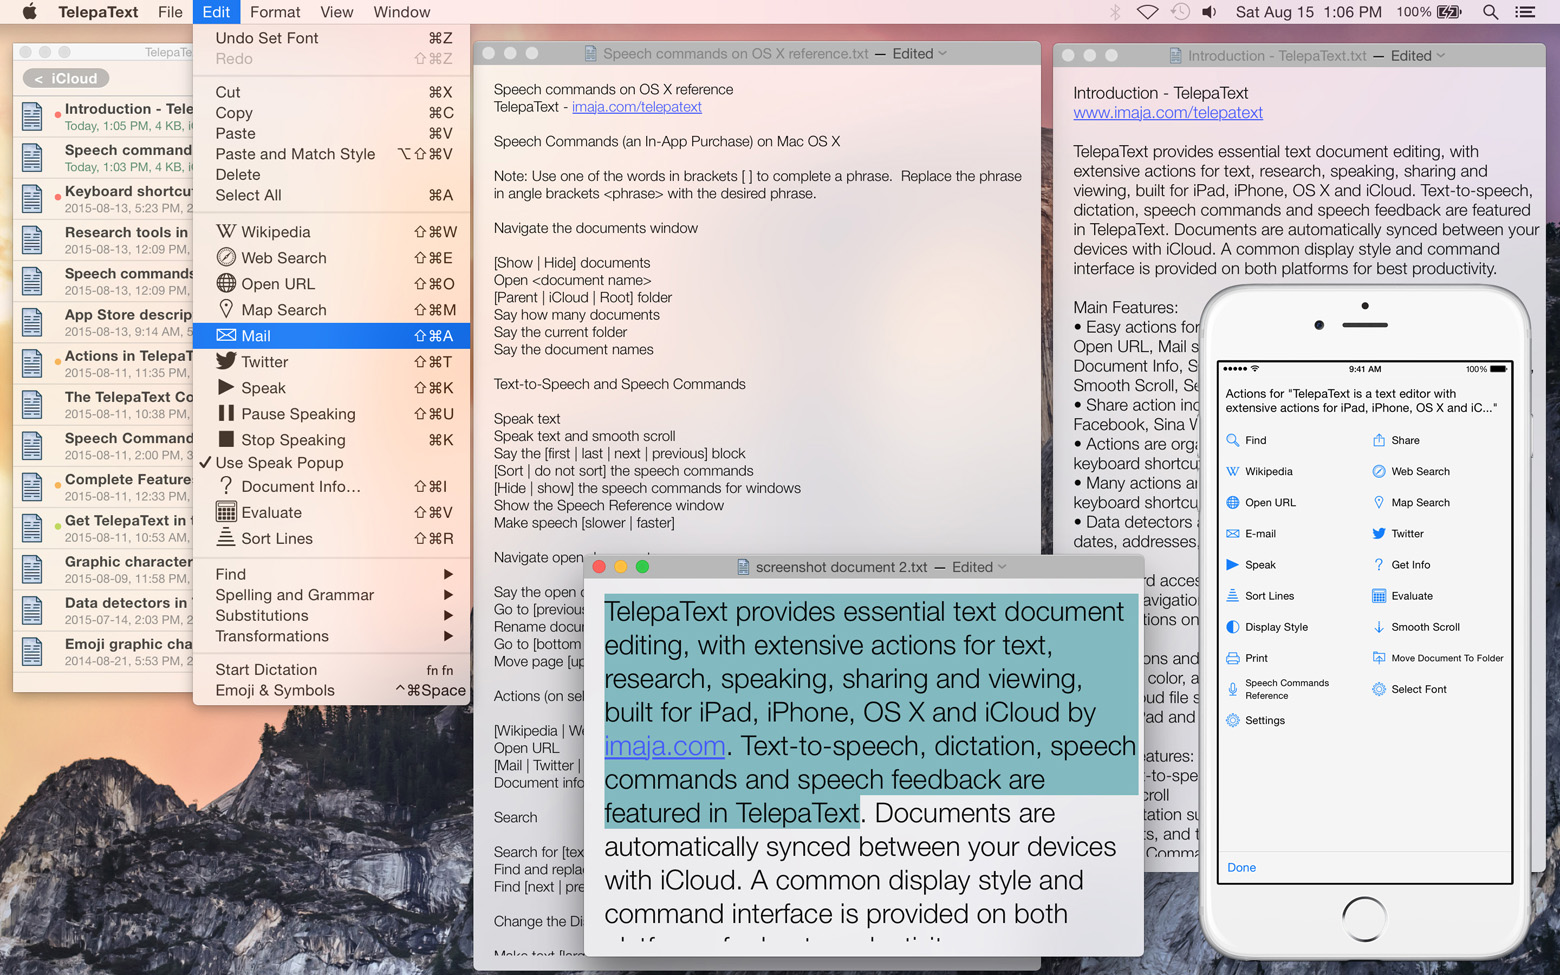 Press Release: TelepaText text editor updated with new actions and